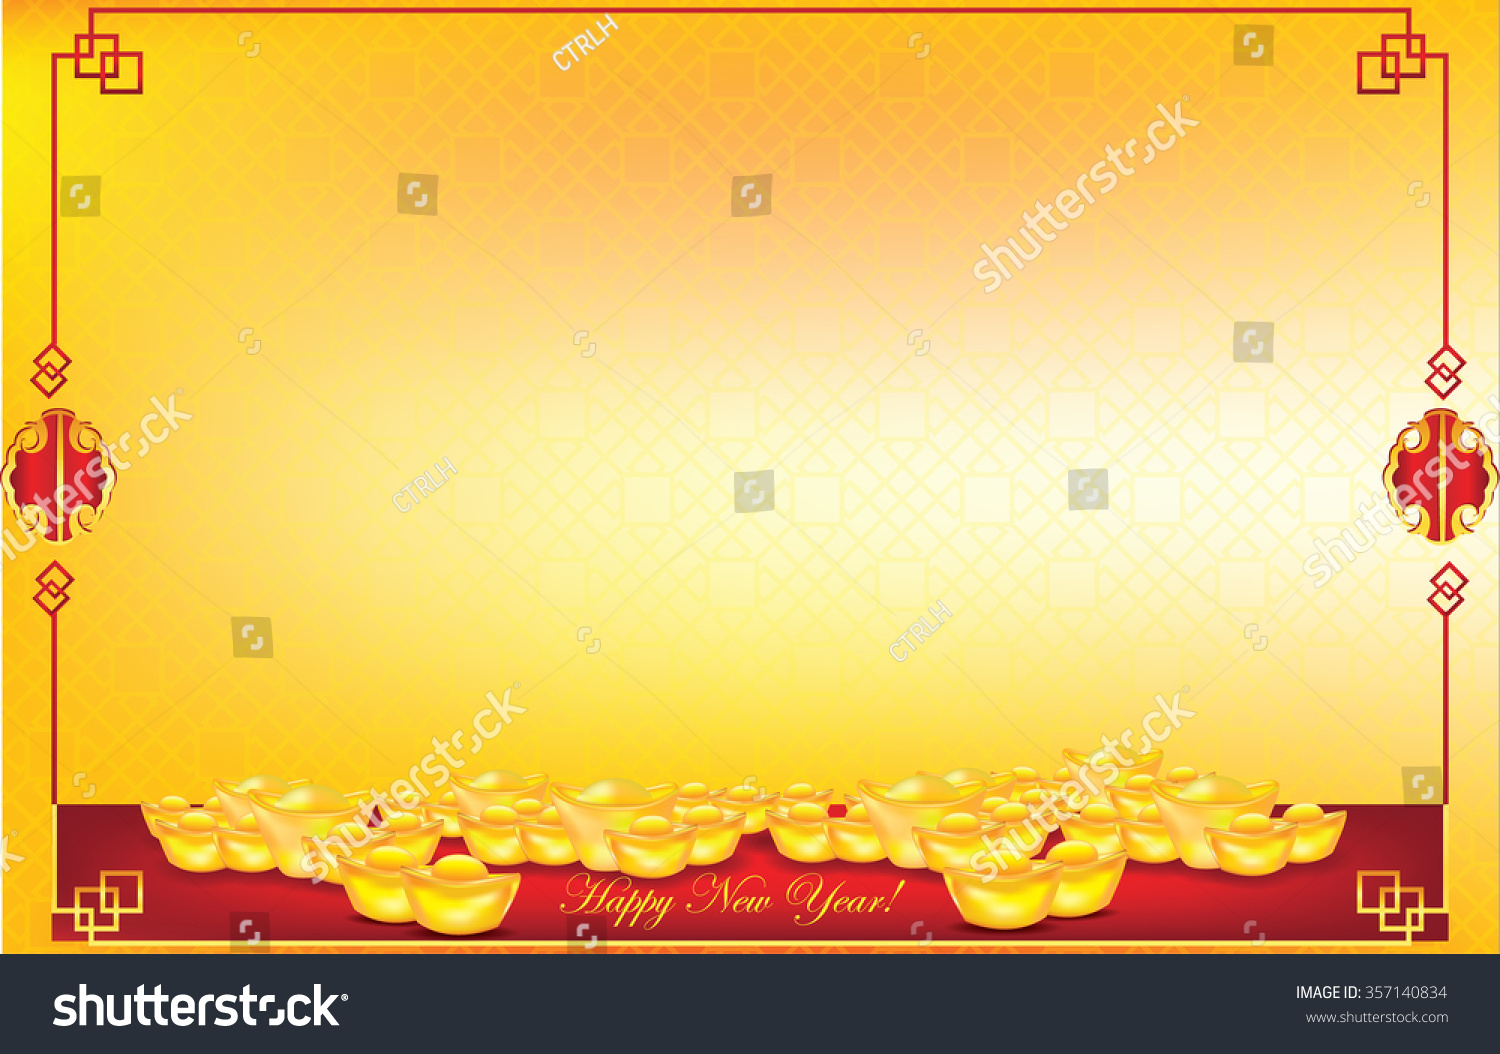 Chinese new year background contains chinese pattern golden nuggets